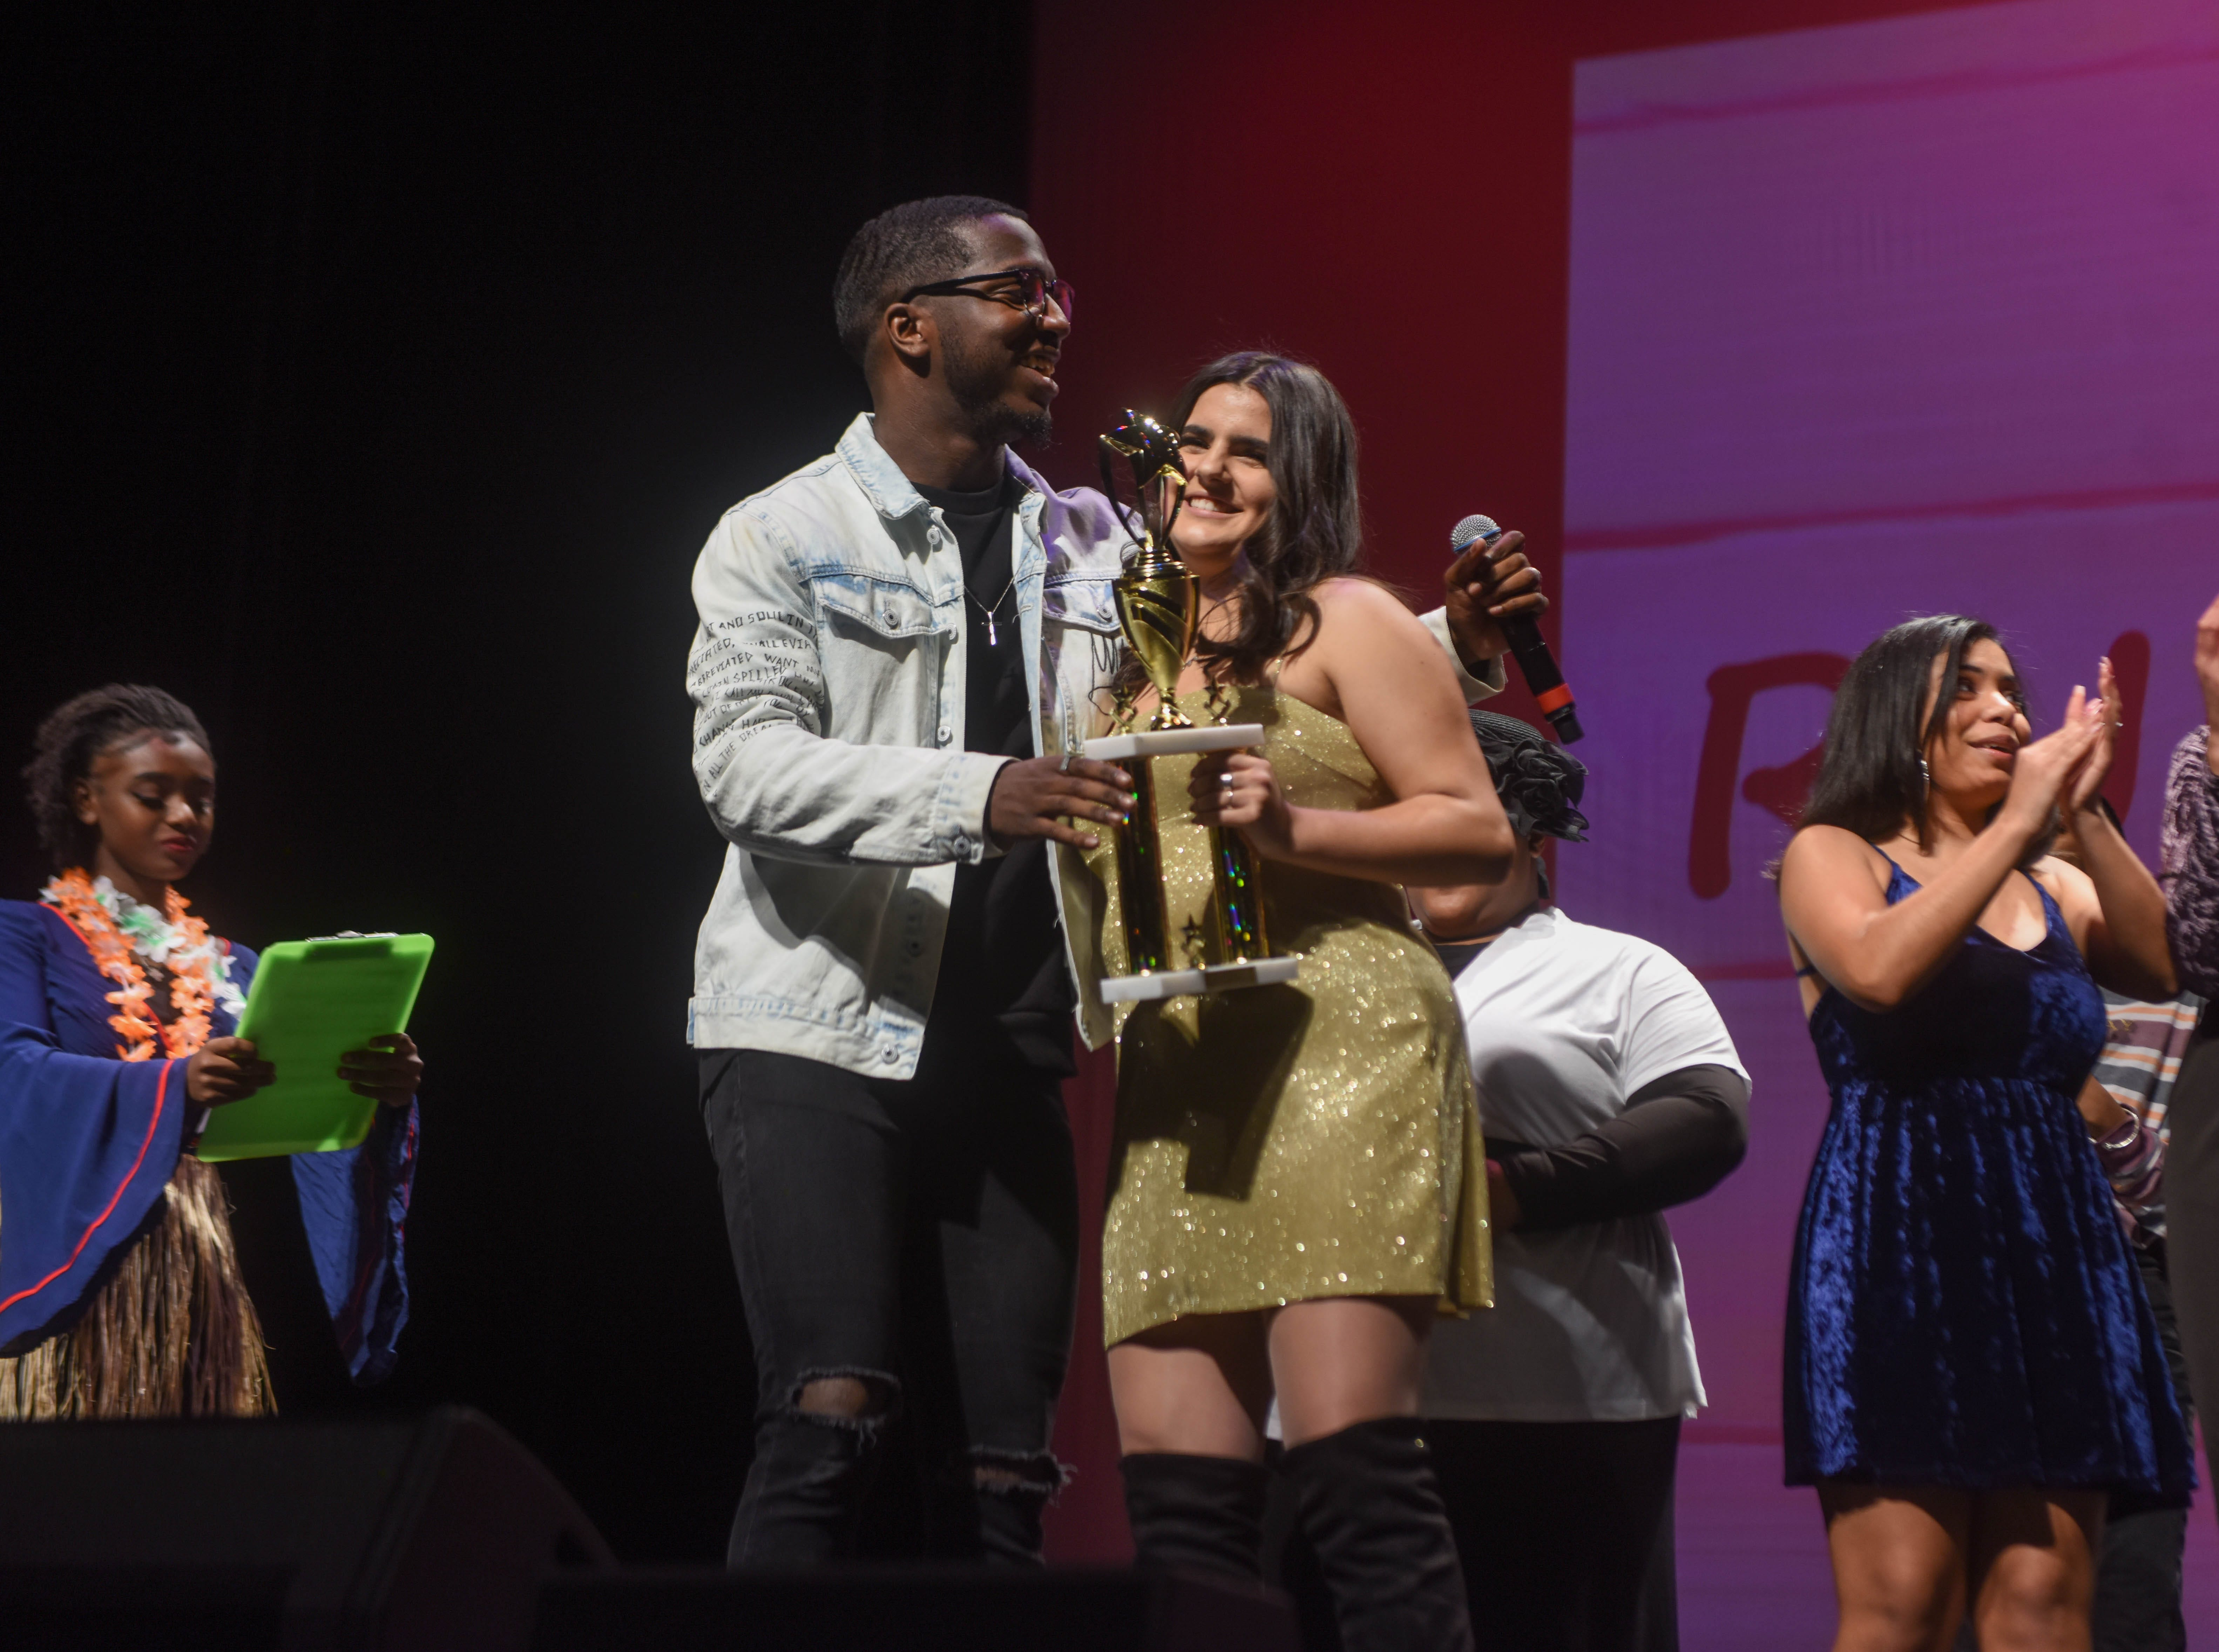 Lena Graf (2019 Englewood Idol Second Runner Up). The 2019 Englewood Idol was held at bergenPAC theater. The singing competition is open to any high school student who currently lives or goes to school in Englewood, NJ. This years winner was Genesis Capellan. 01/11/2019